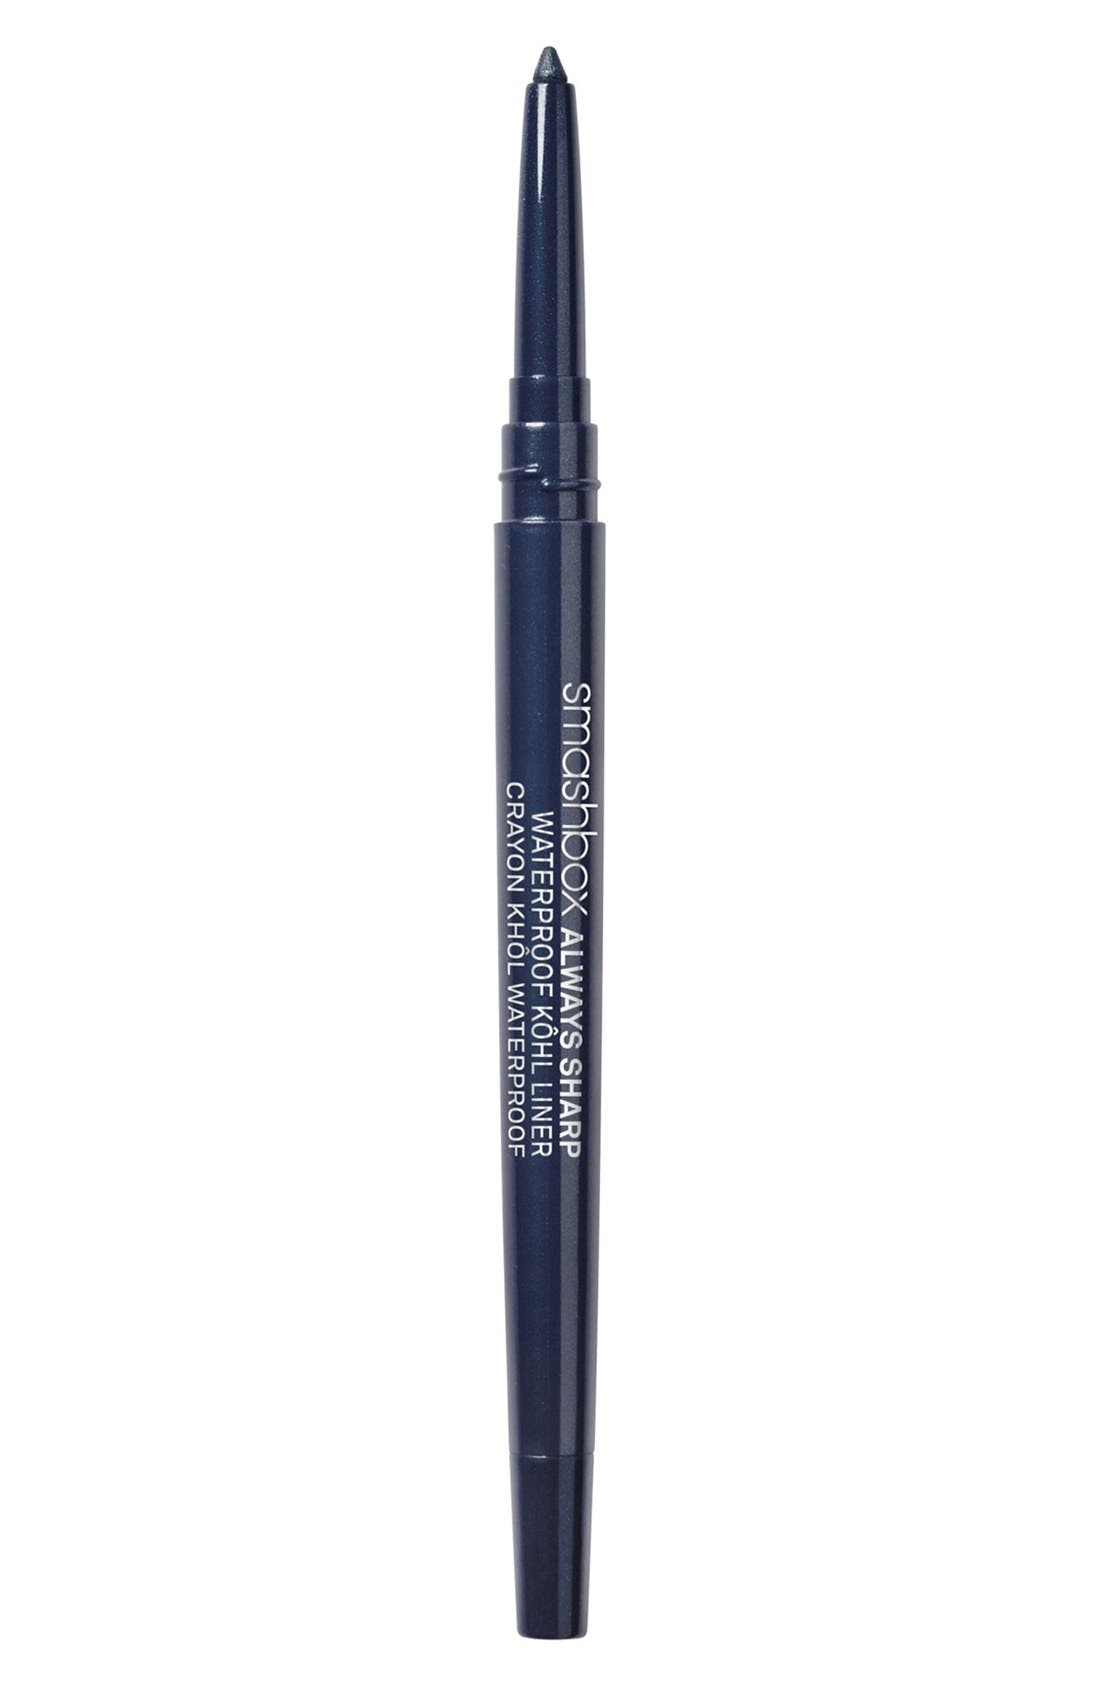 Smashbox Always Sharp Waterproof Kôhl Liner